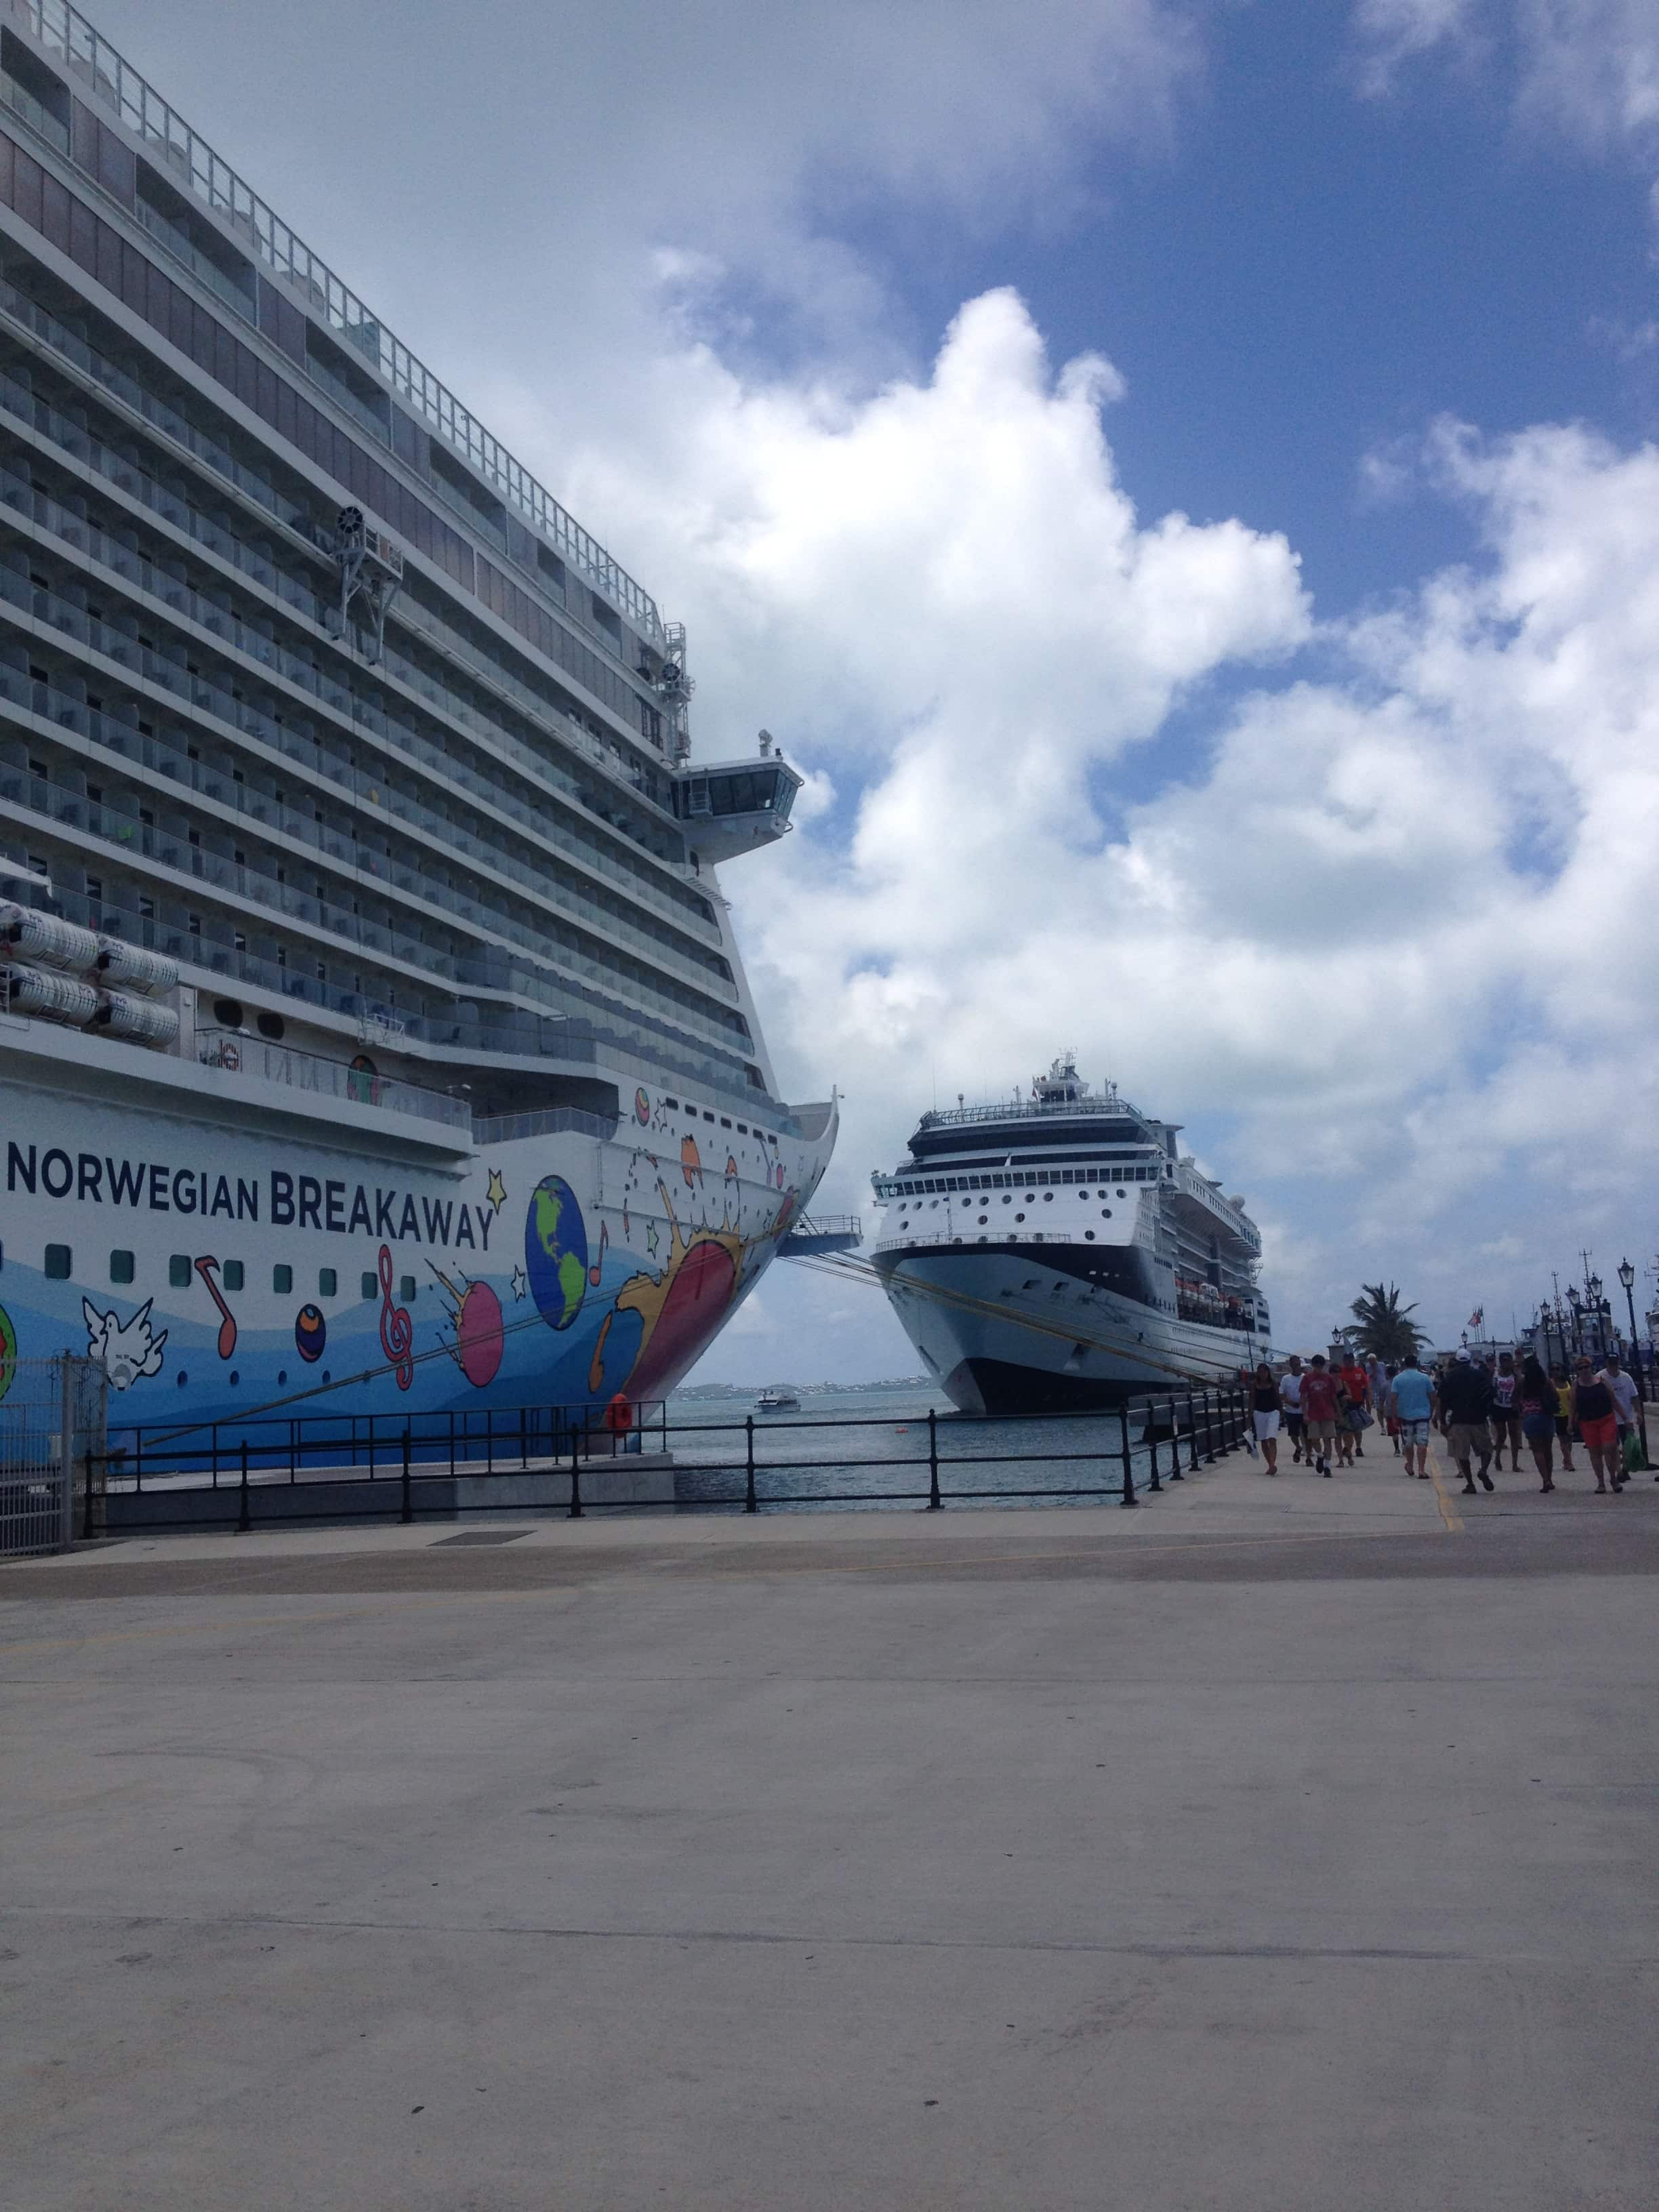 Ncl S Norwegian Breakaway Cruising Isnt Just For Old People